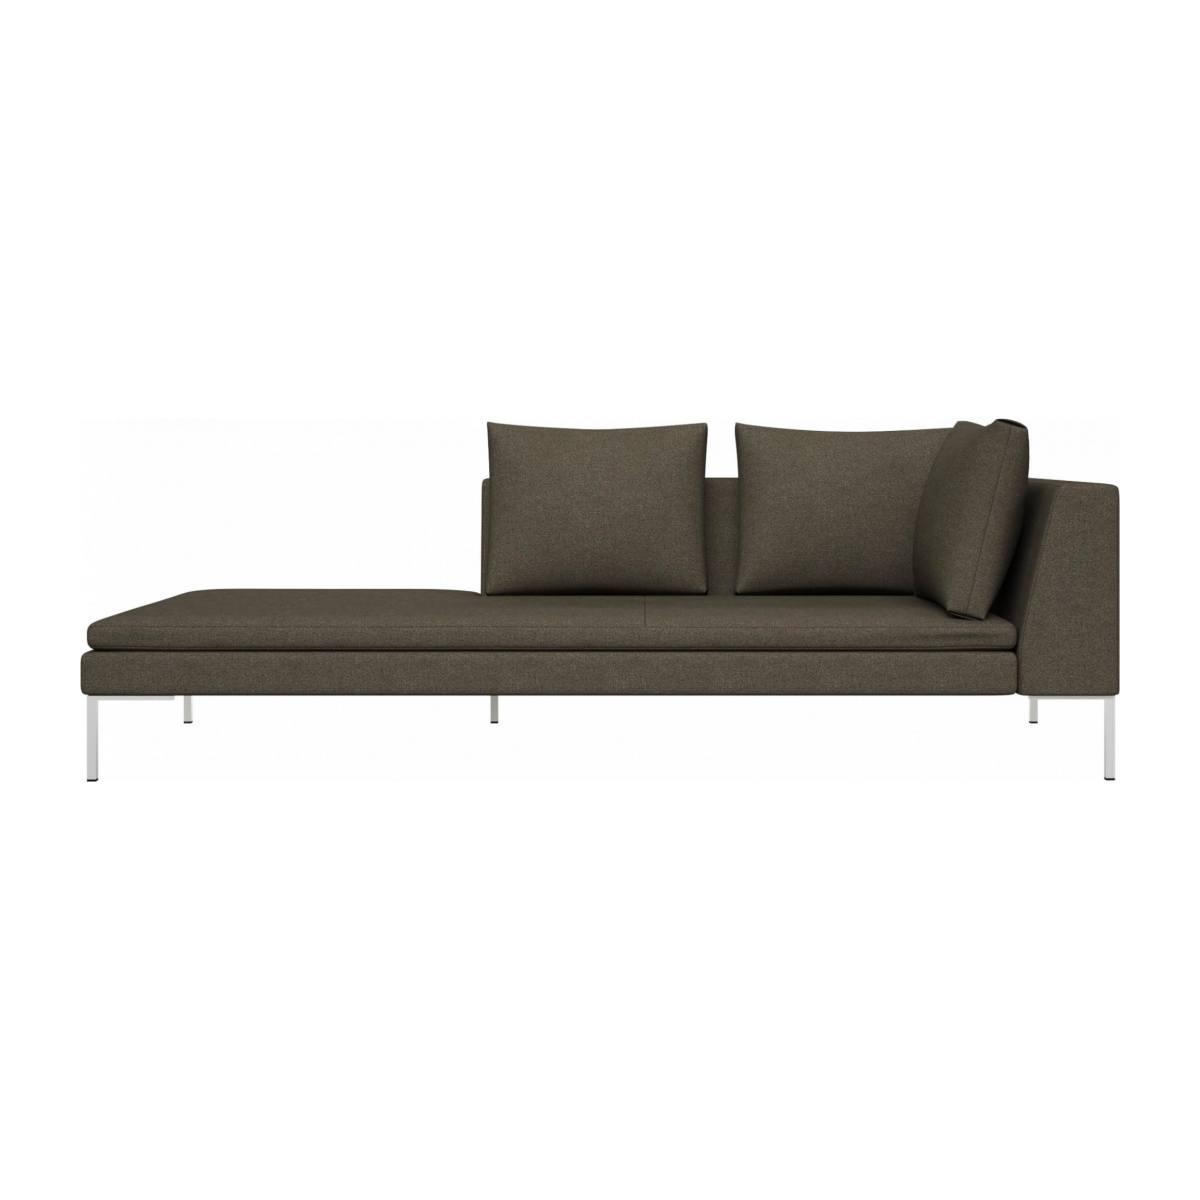 Left chaise longue in Lecce fabric, slade grey n°1